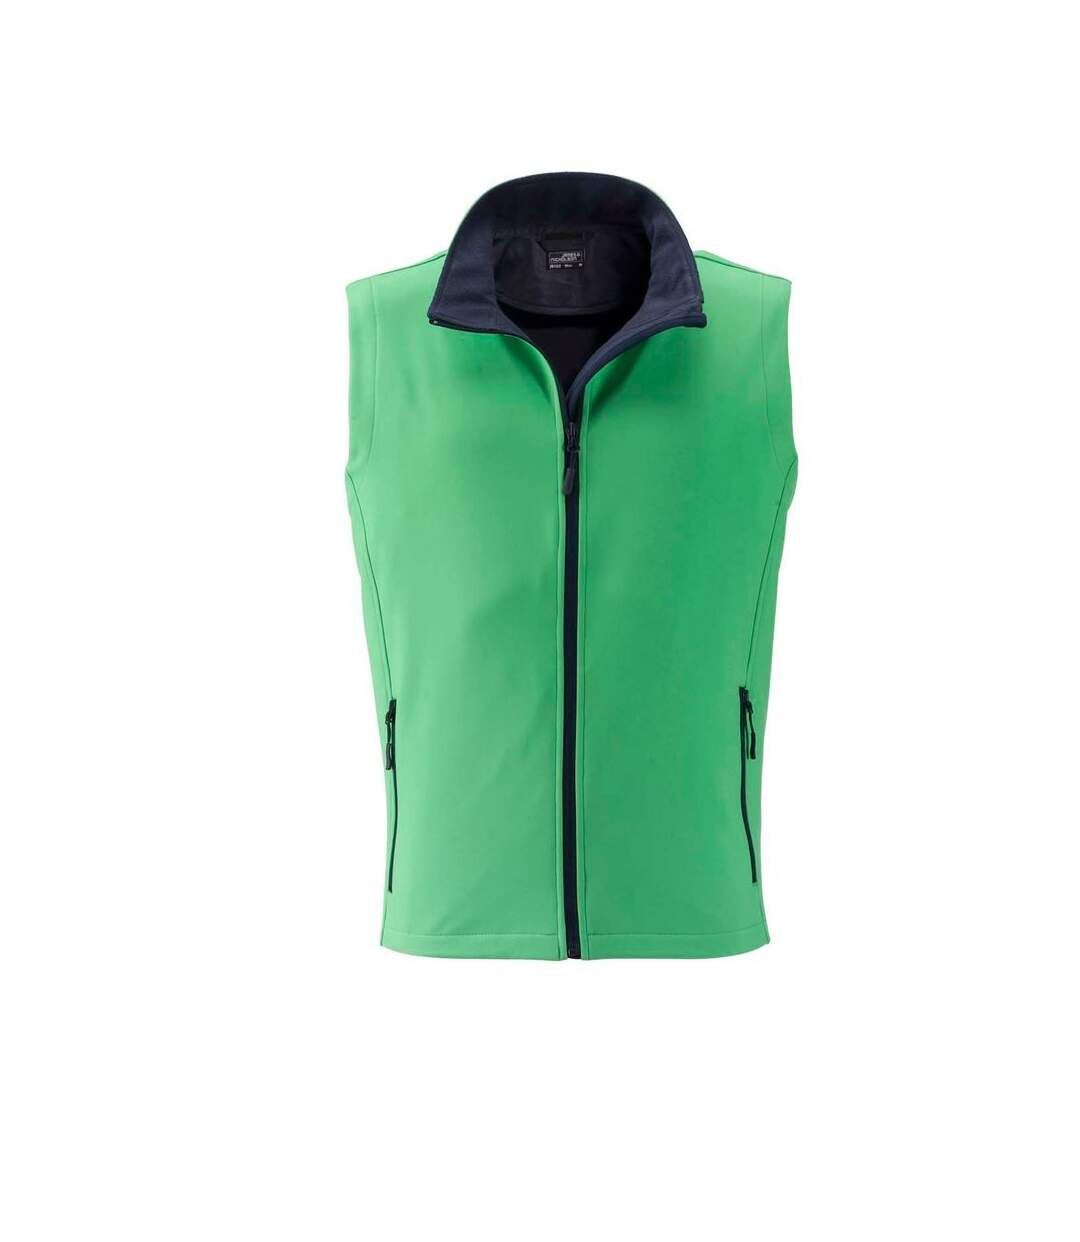 Gilet sans manches micropolaire softshell - JN1128 - vert - Homme